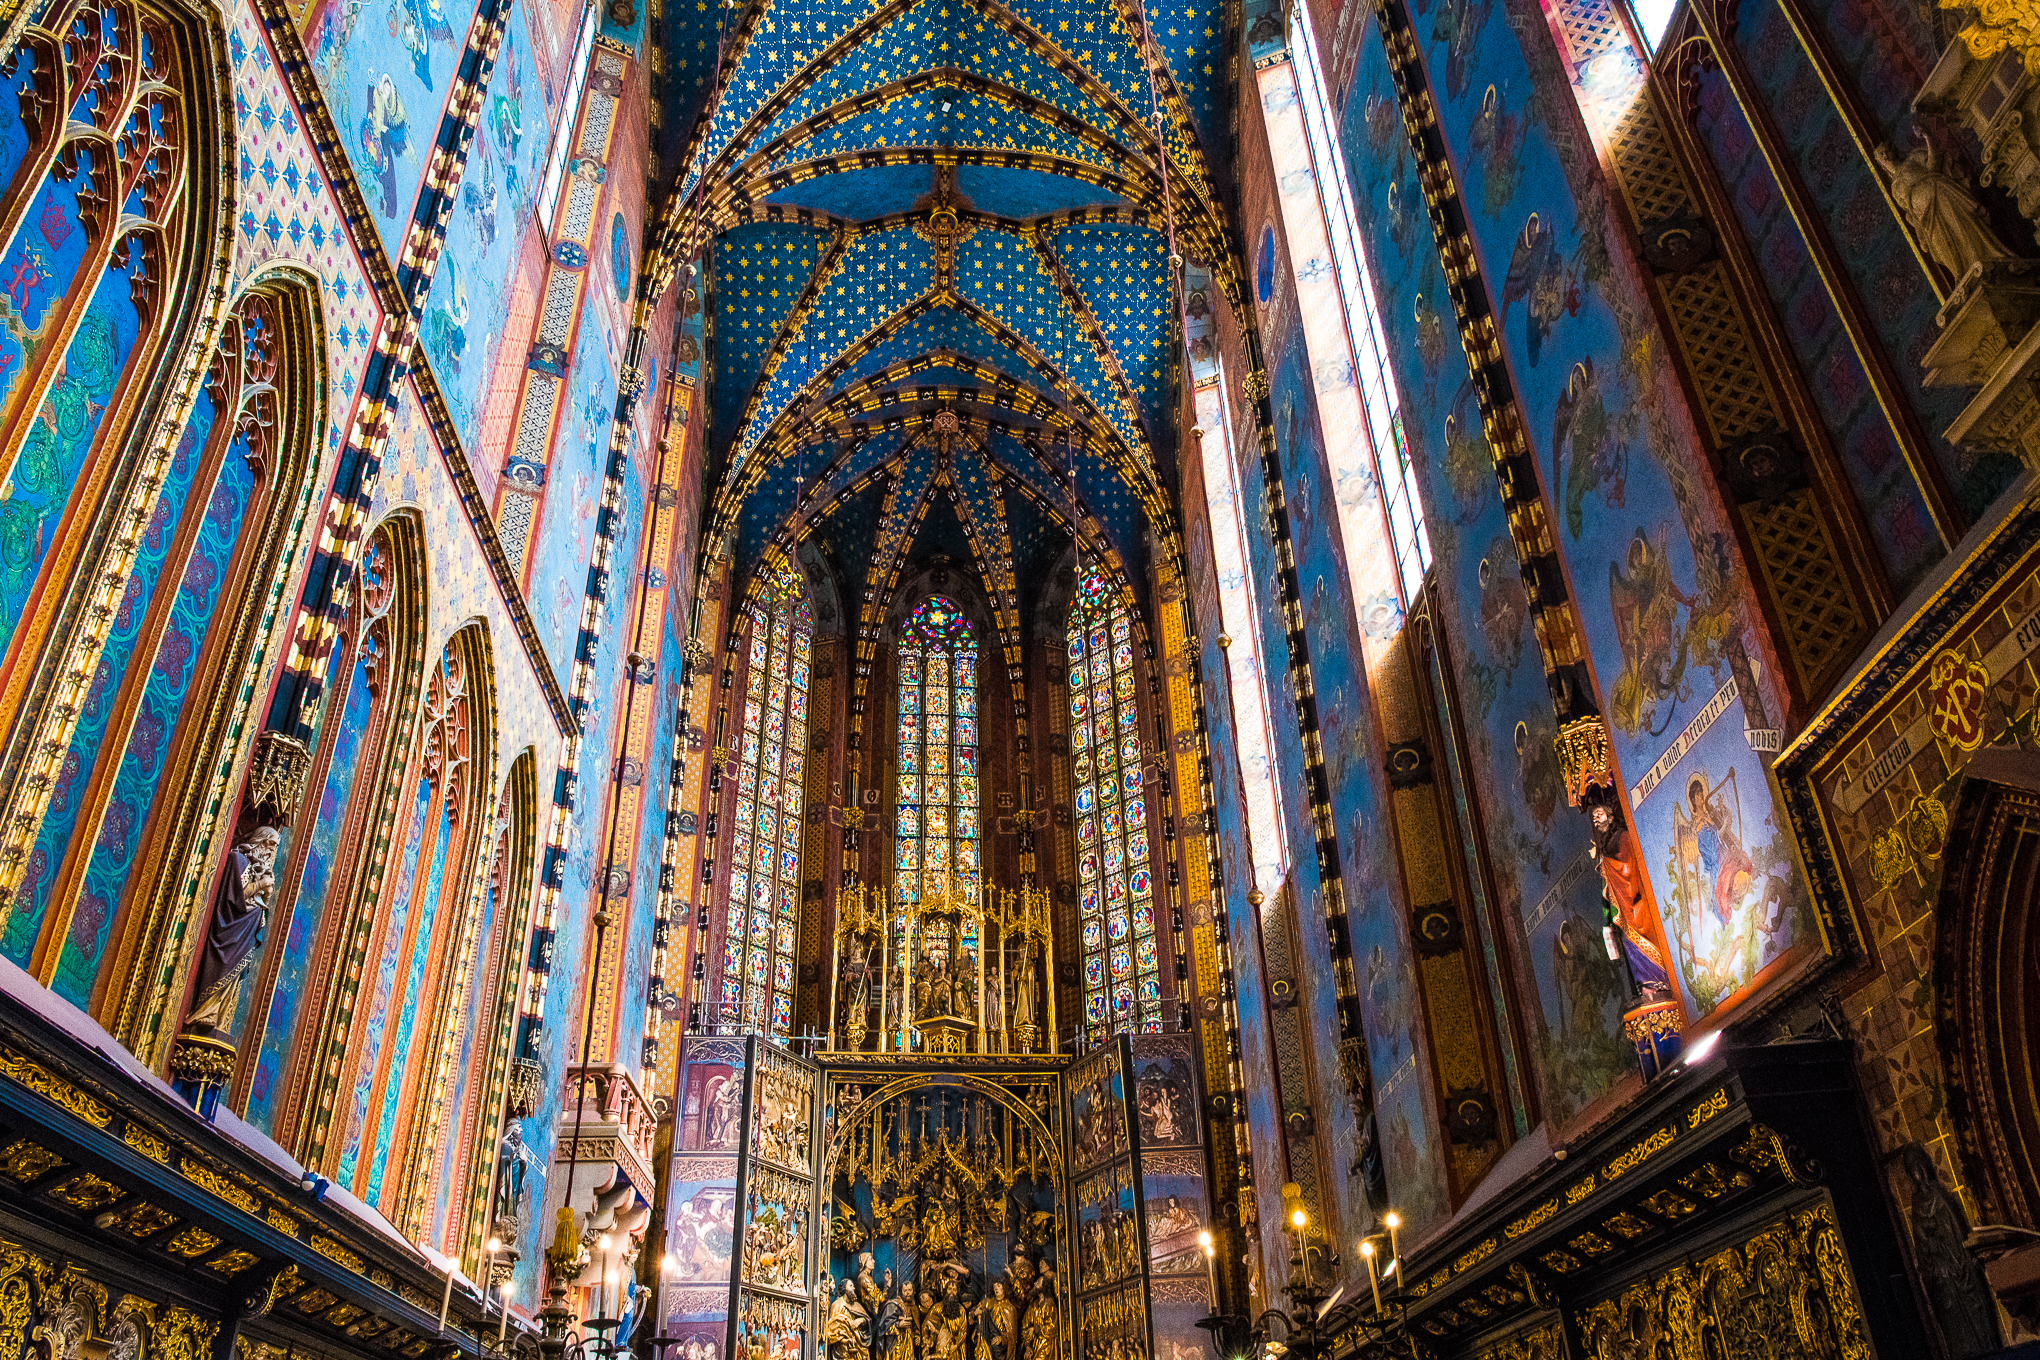 The colourful details inside St Mary's Bascilica